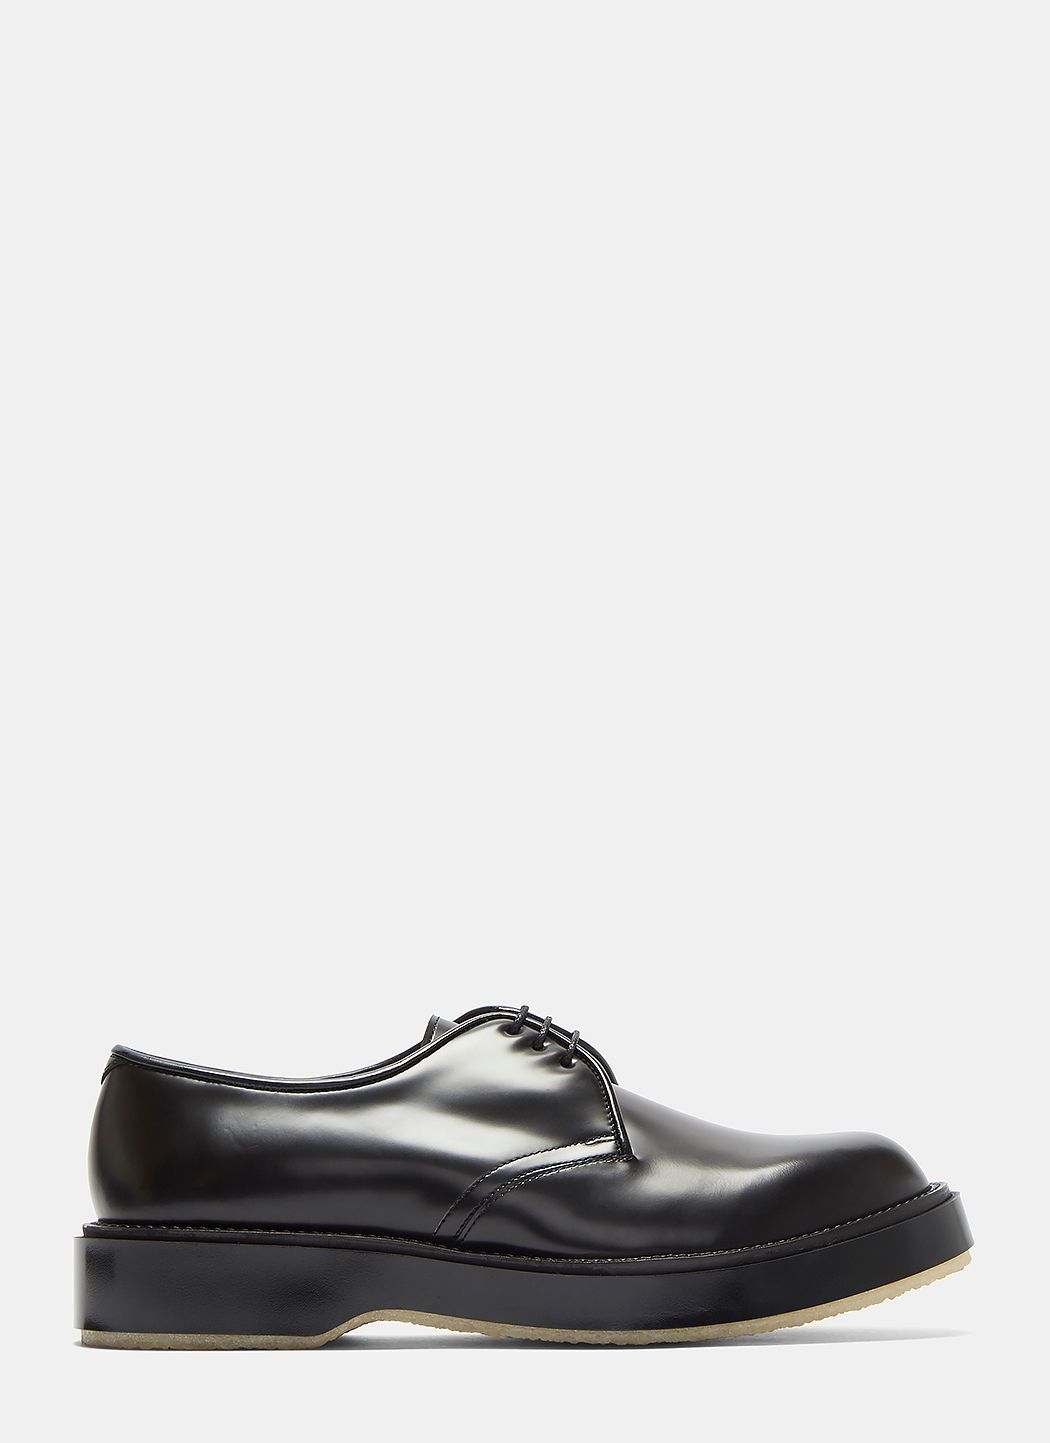 ADIEU PARISType 116 Creeper Derby Shoes 0eoVLg2R49